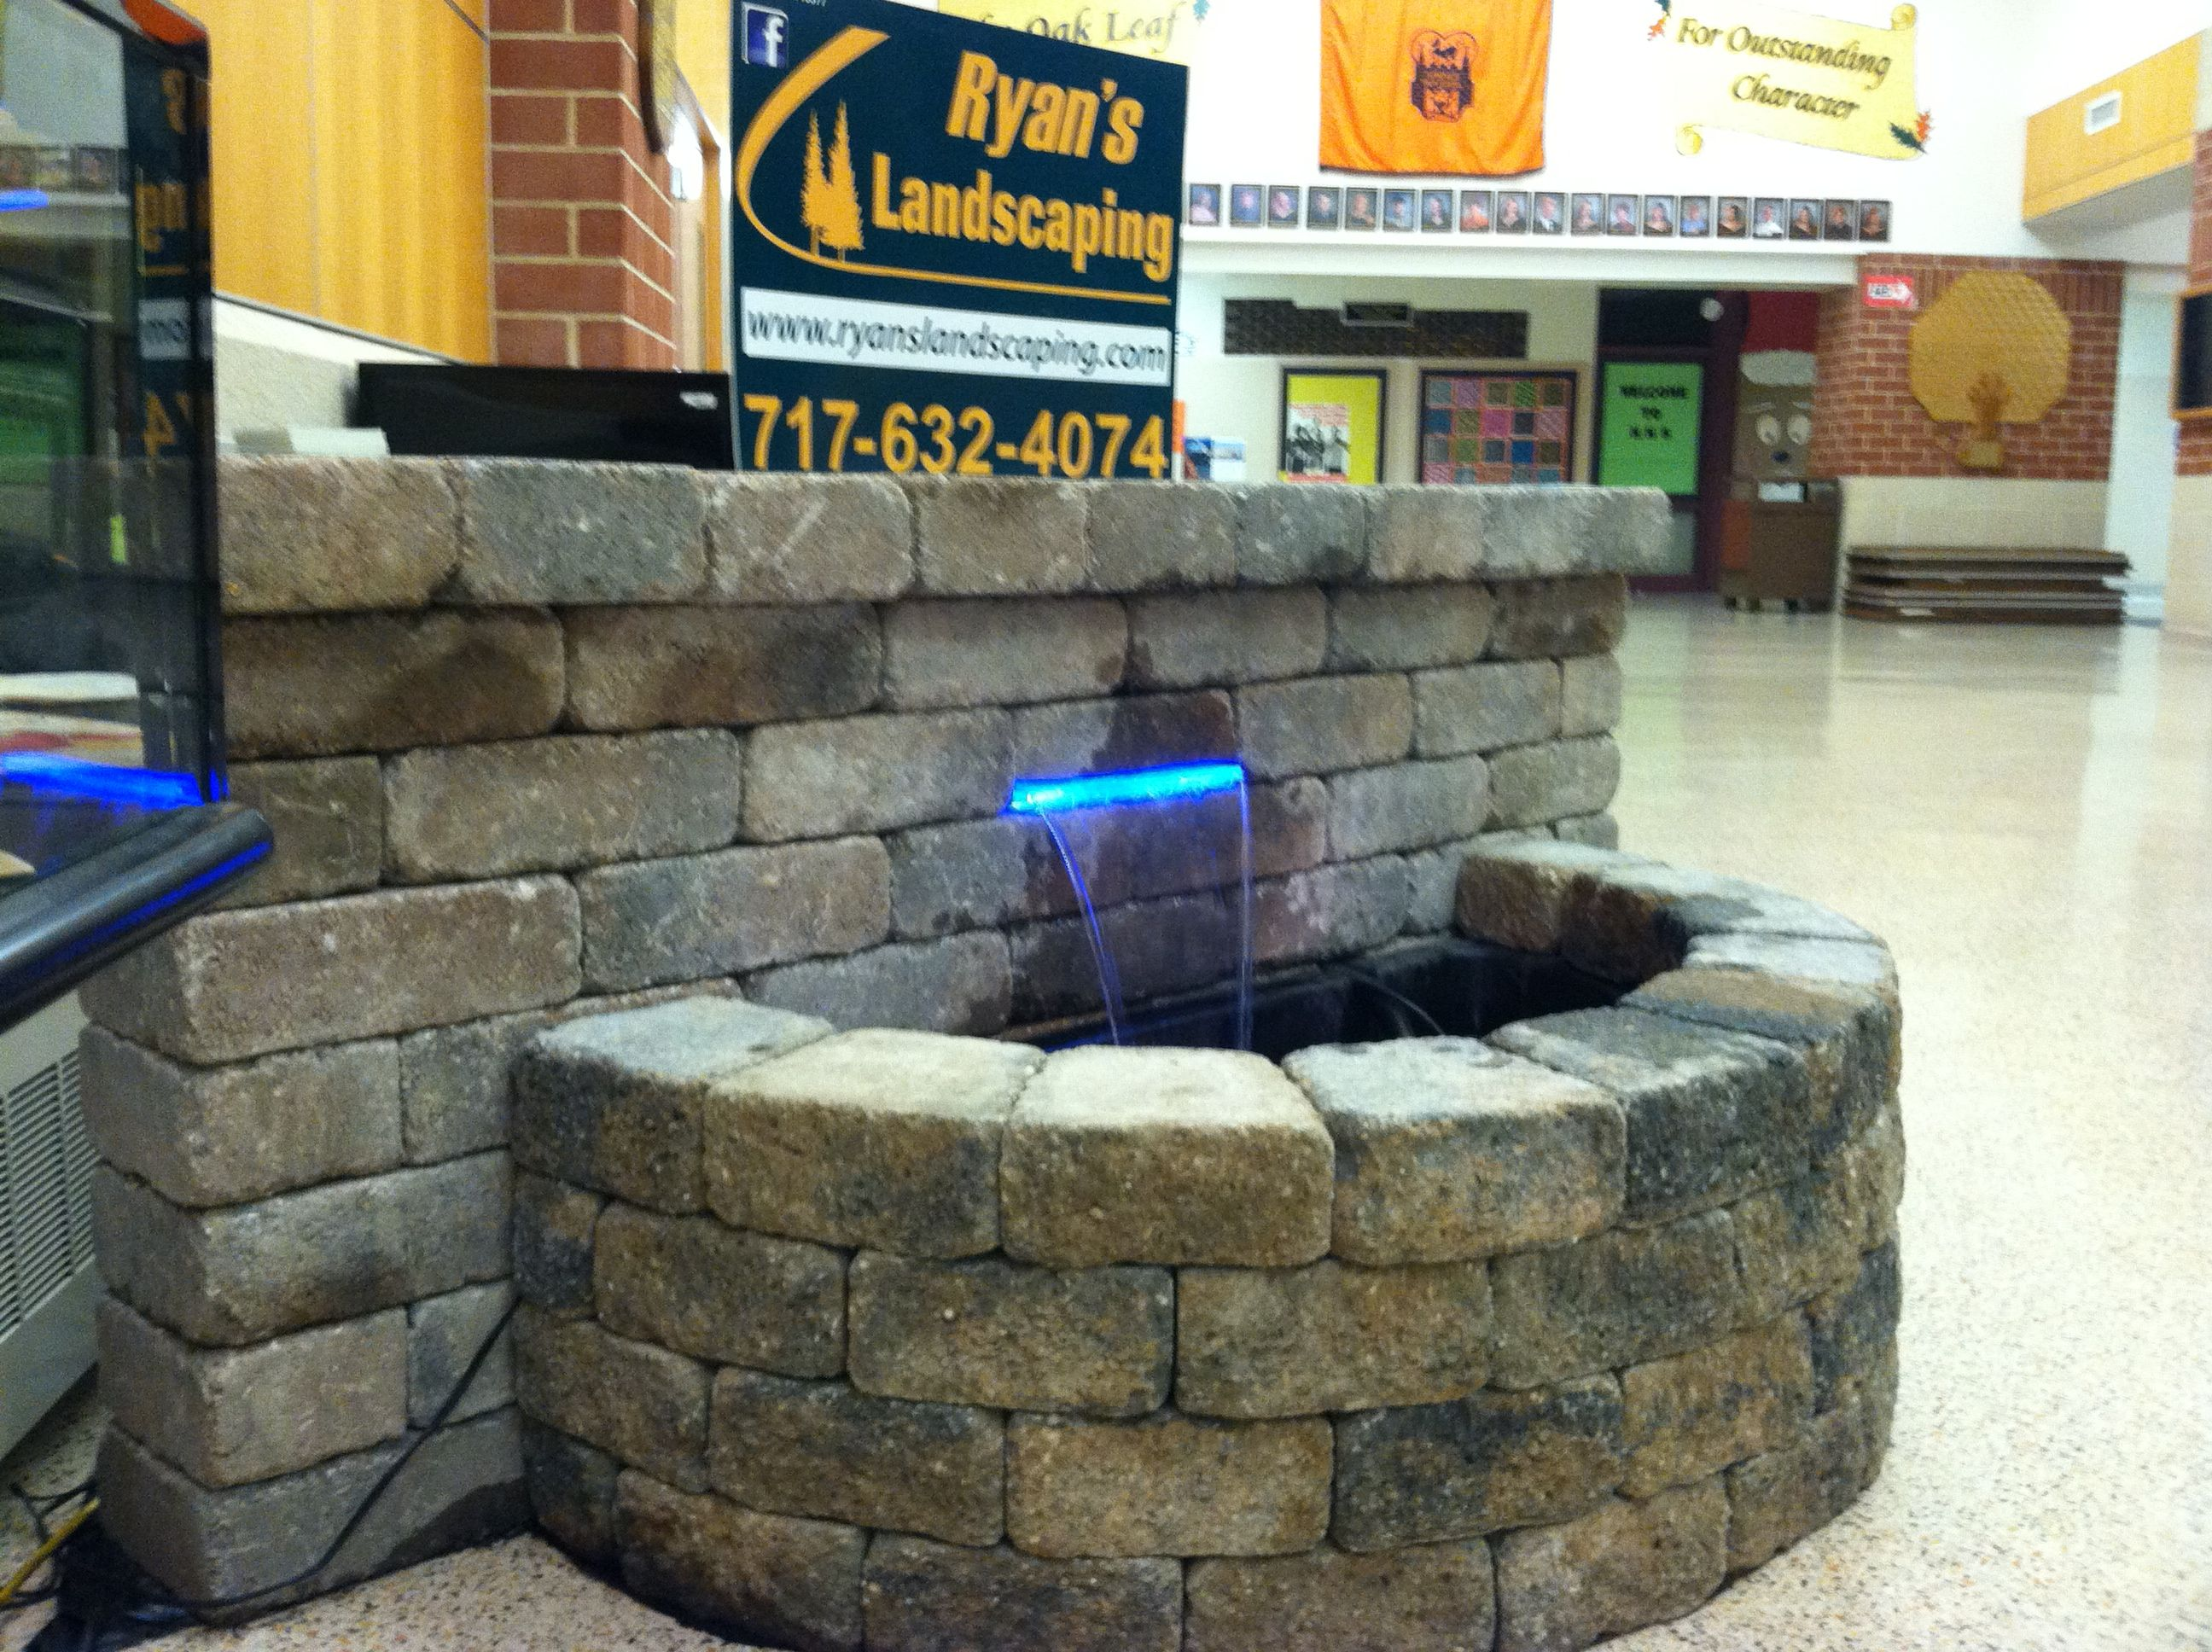 The water feature we set up for Hanover High School when we helped them install fountains for their school play.